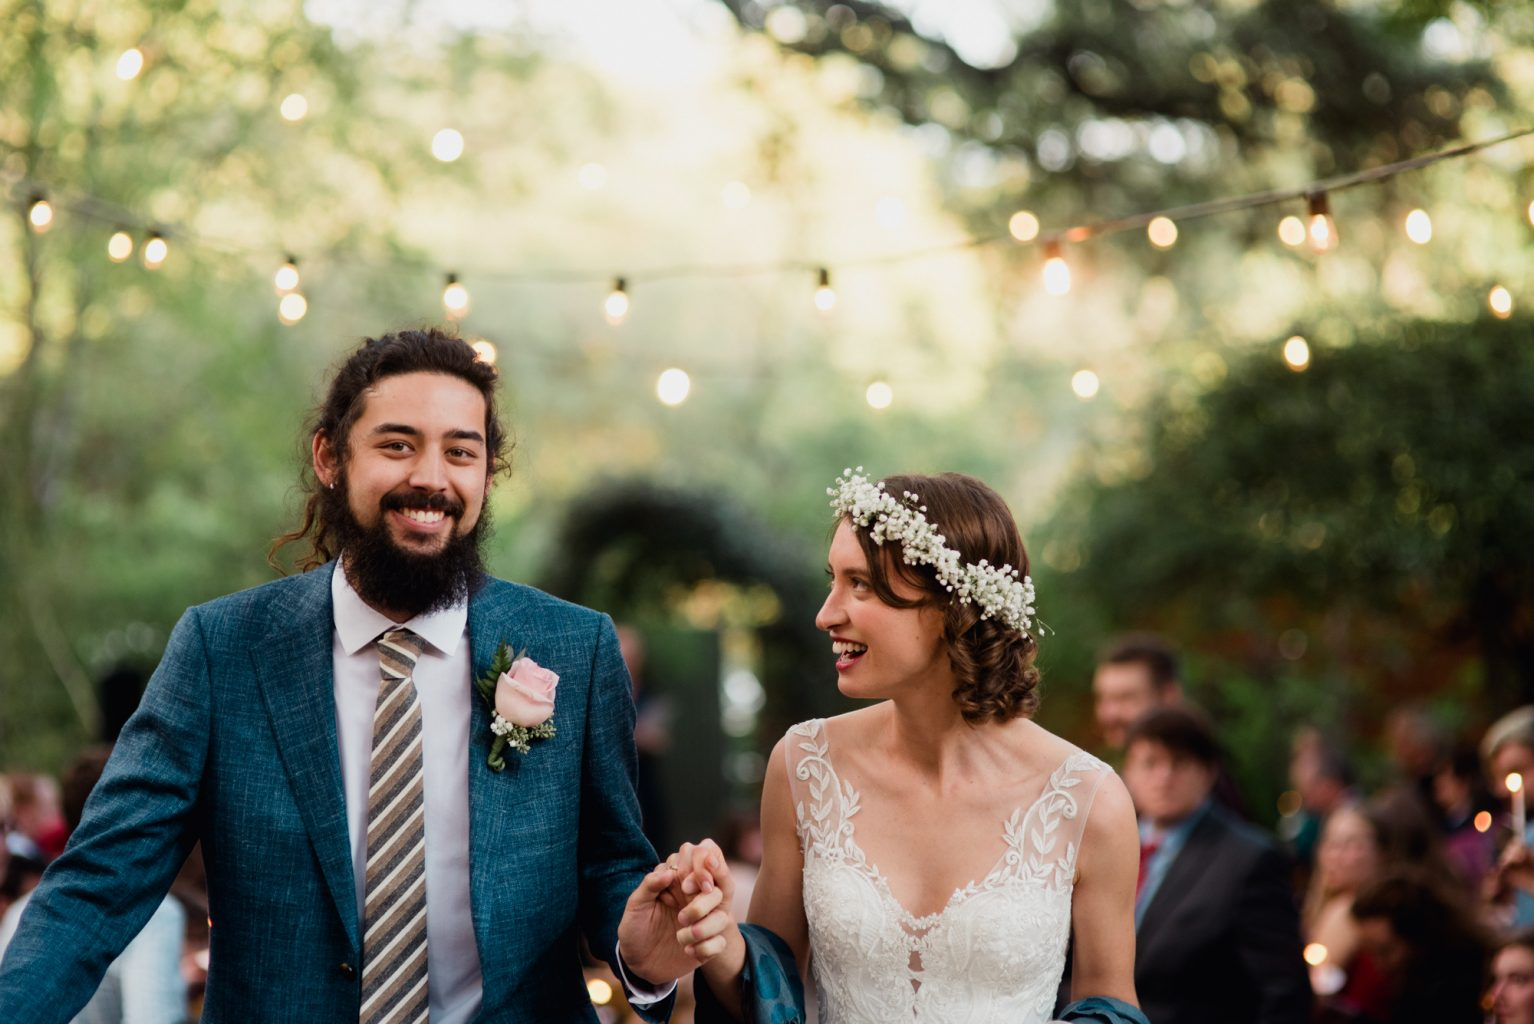 storytelling Austin wedding photography for creative, modern brides and grooms, Austin wedding photographer